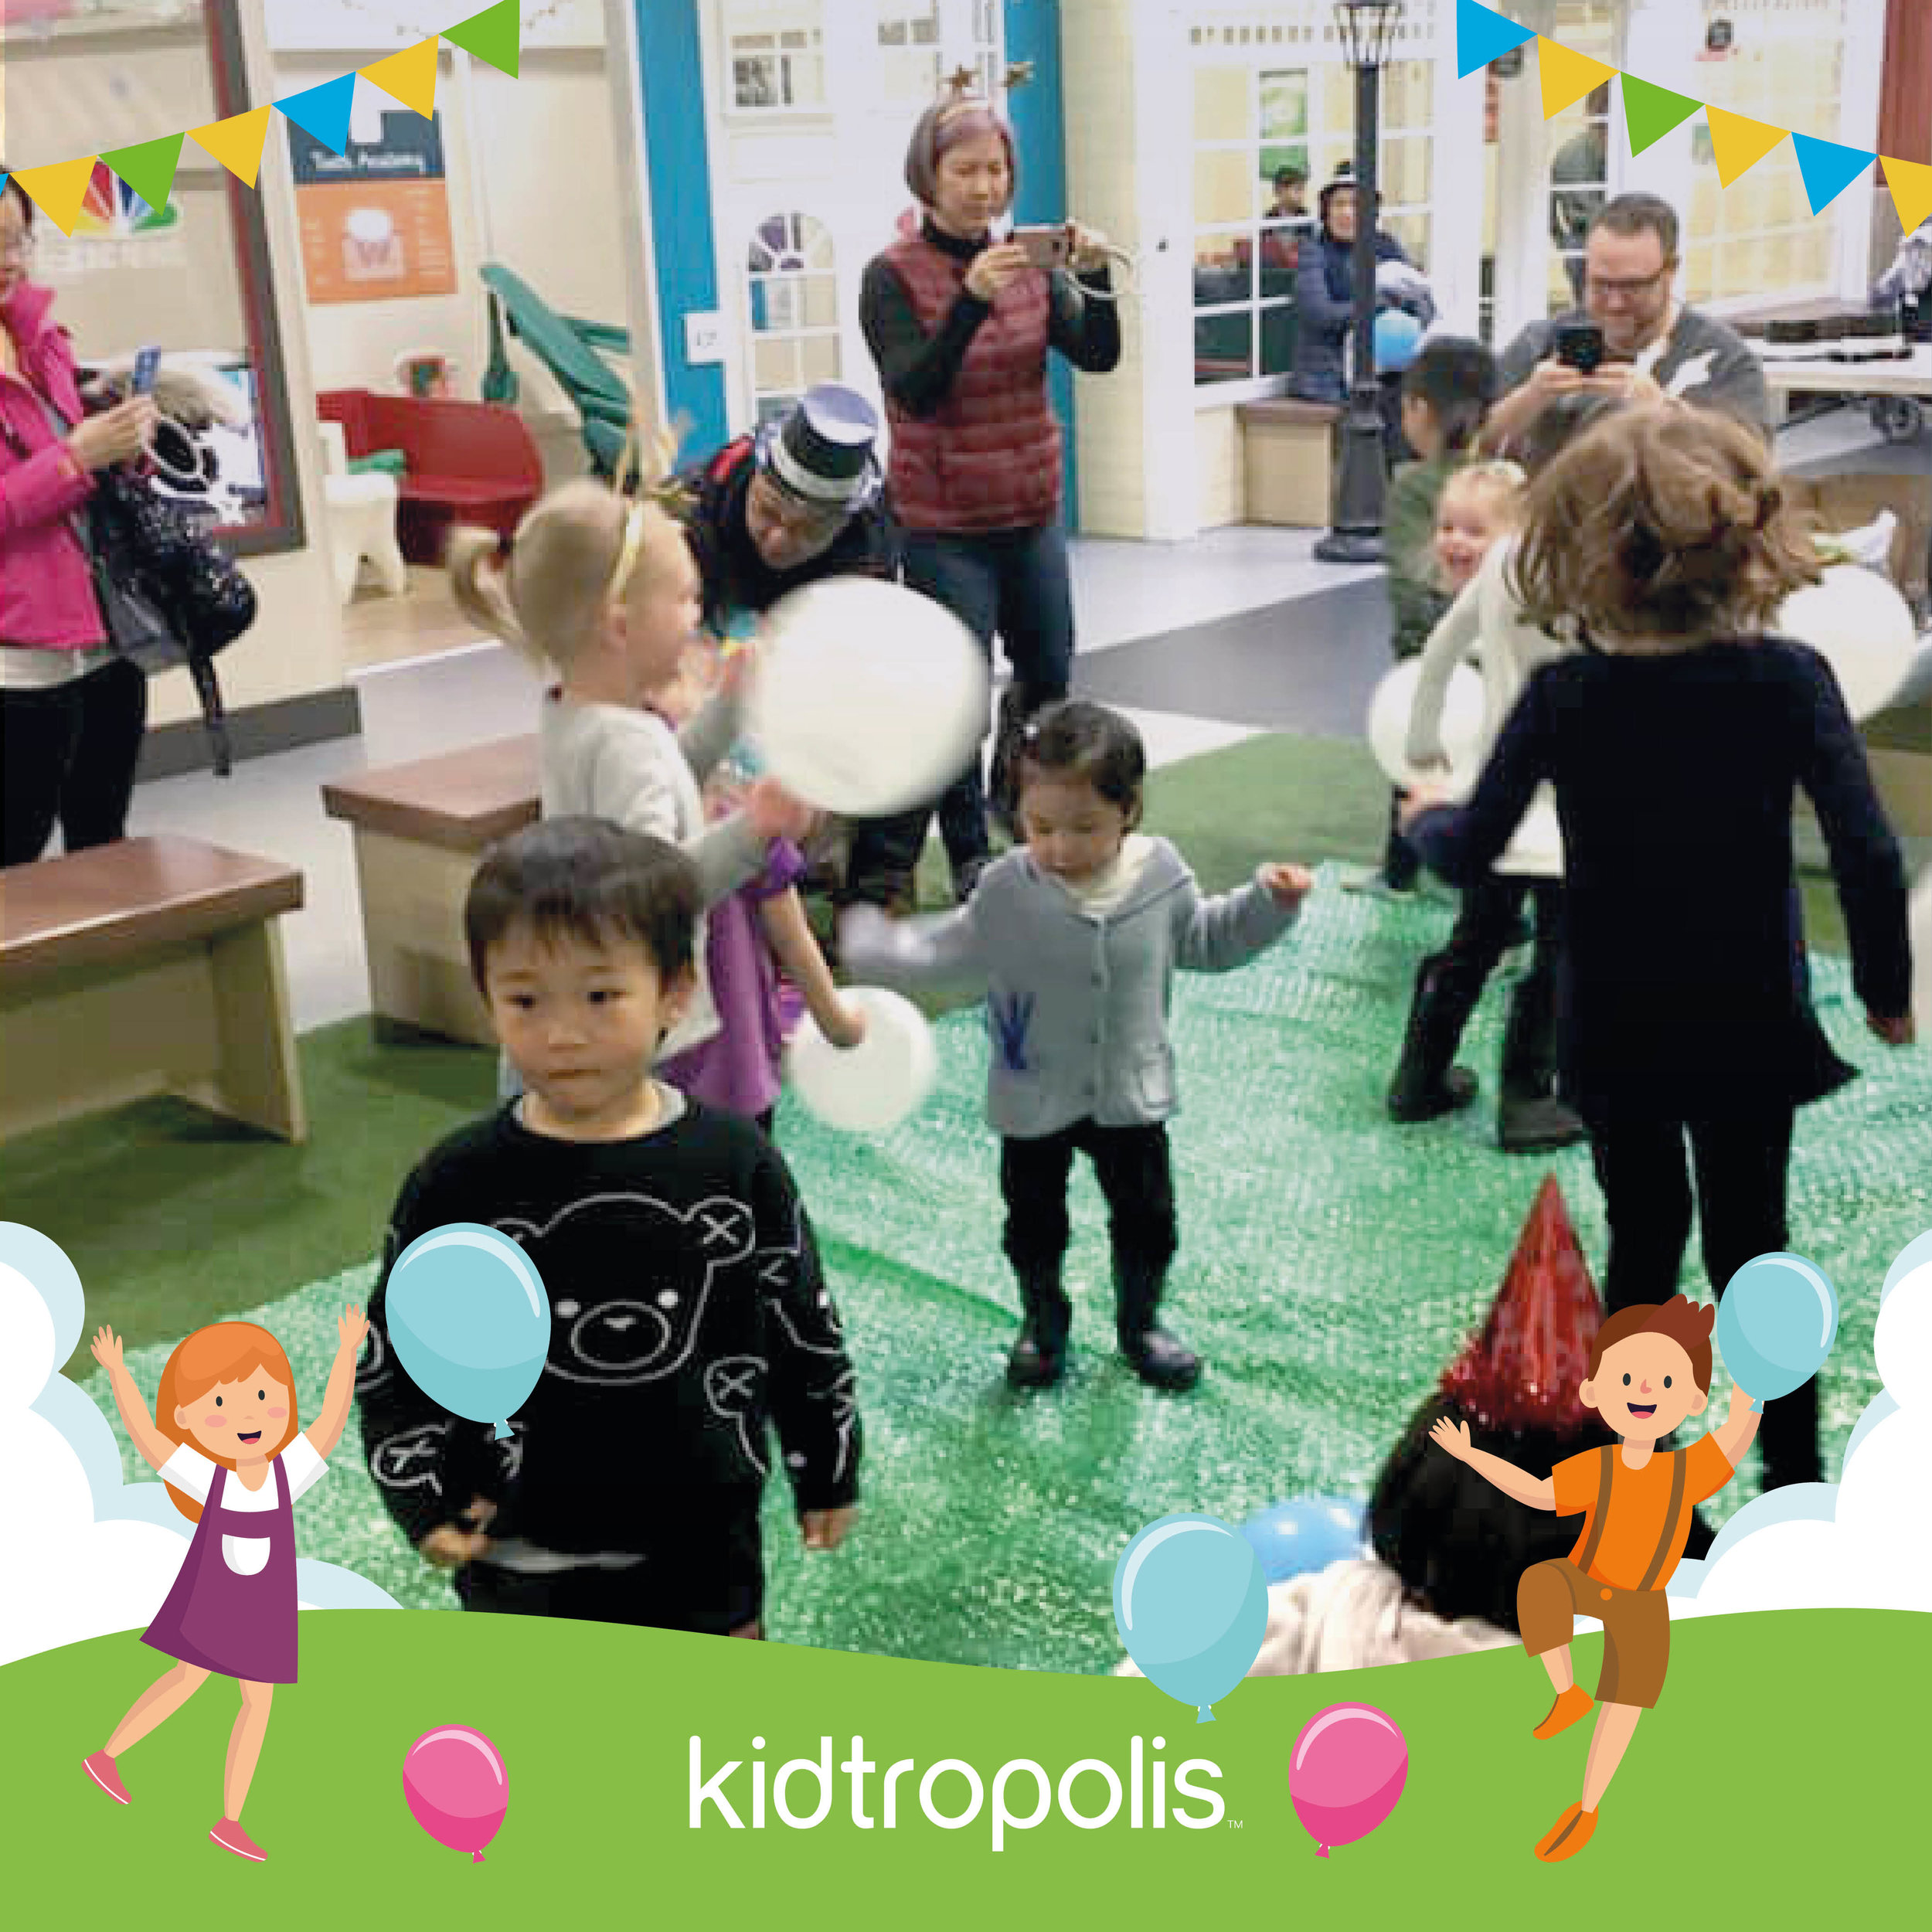 Kidtropolis_1000x1000px_Carousel Ad_Birthday Party4.jpg